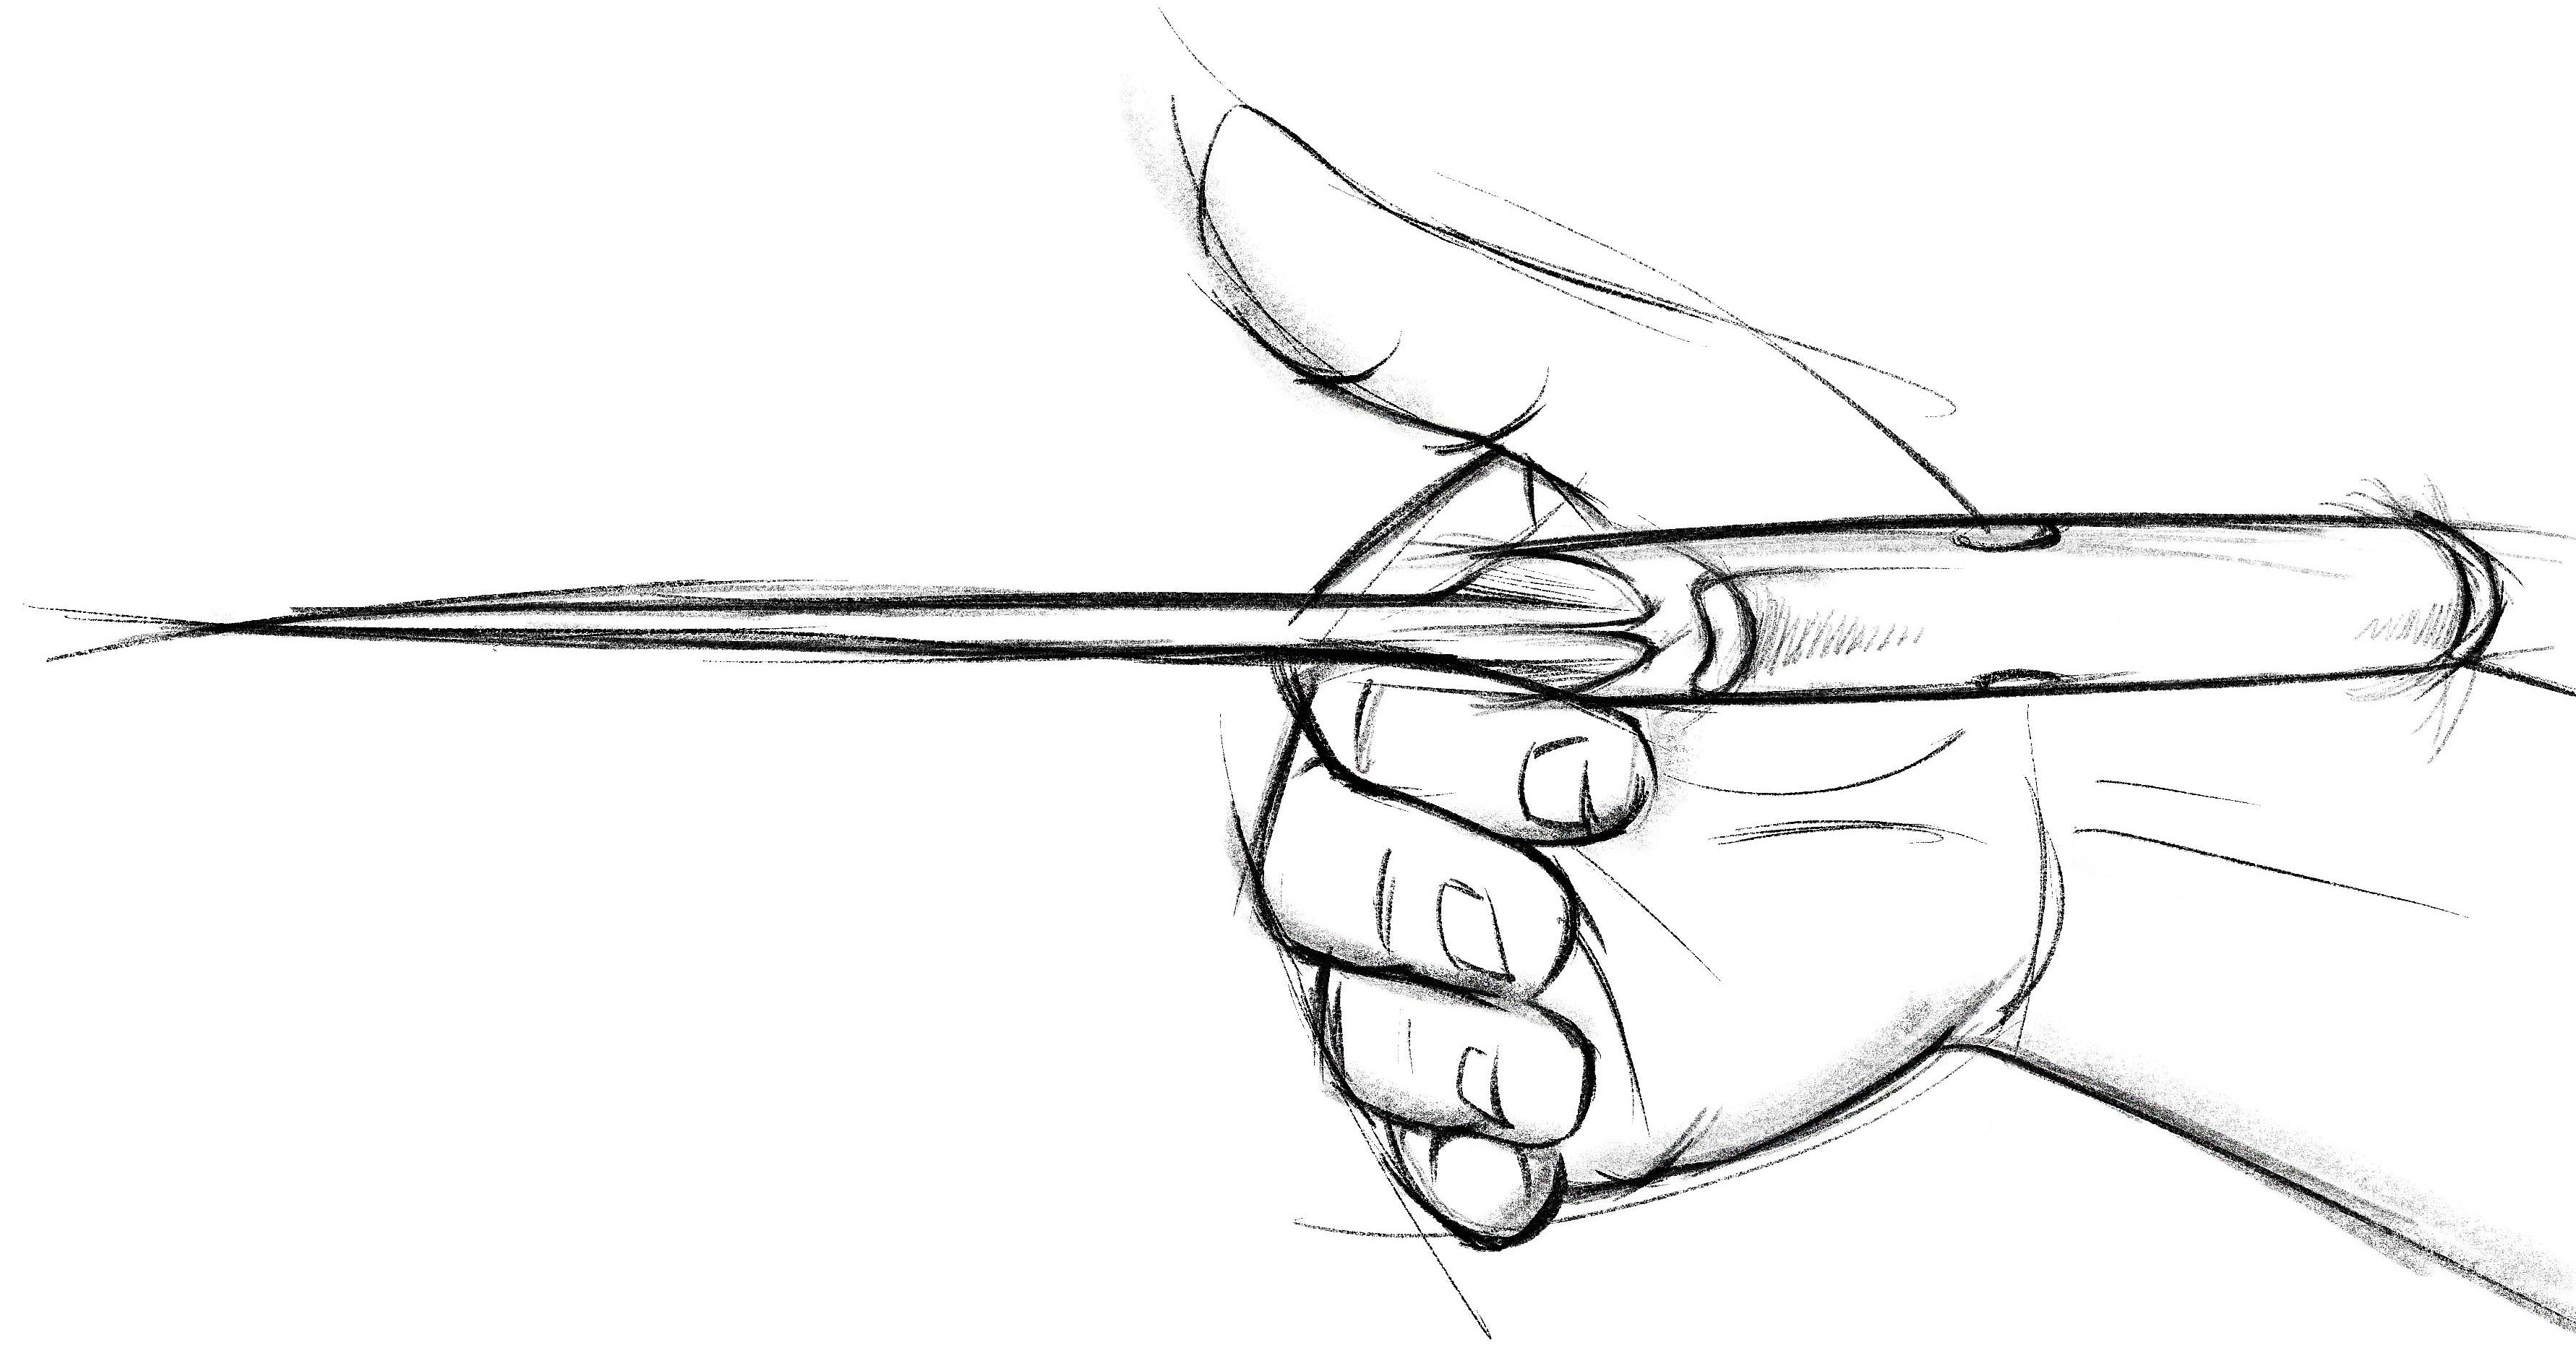 A sketch of a kitchen knife being balanced on a finger where the handle meets the blade.